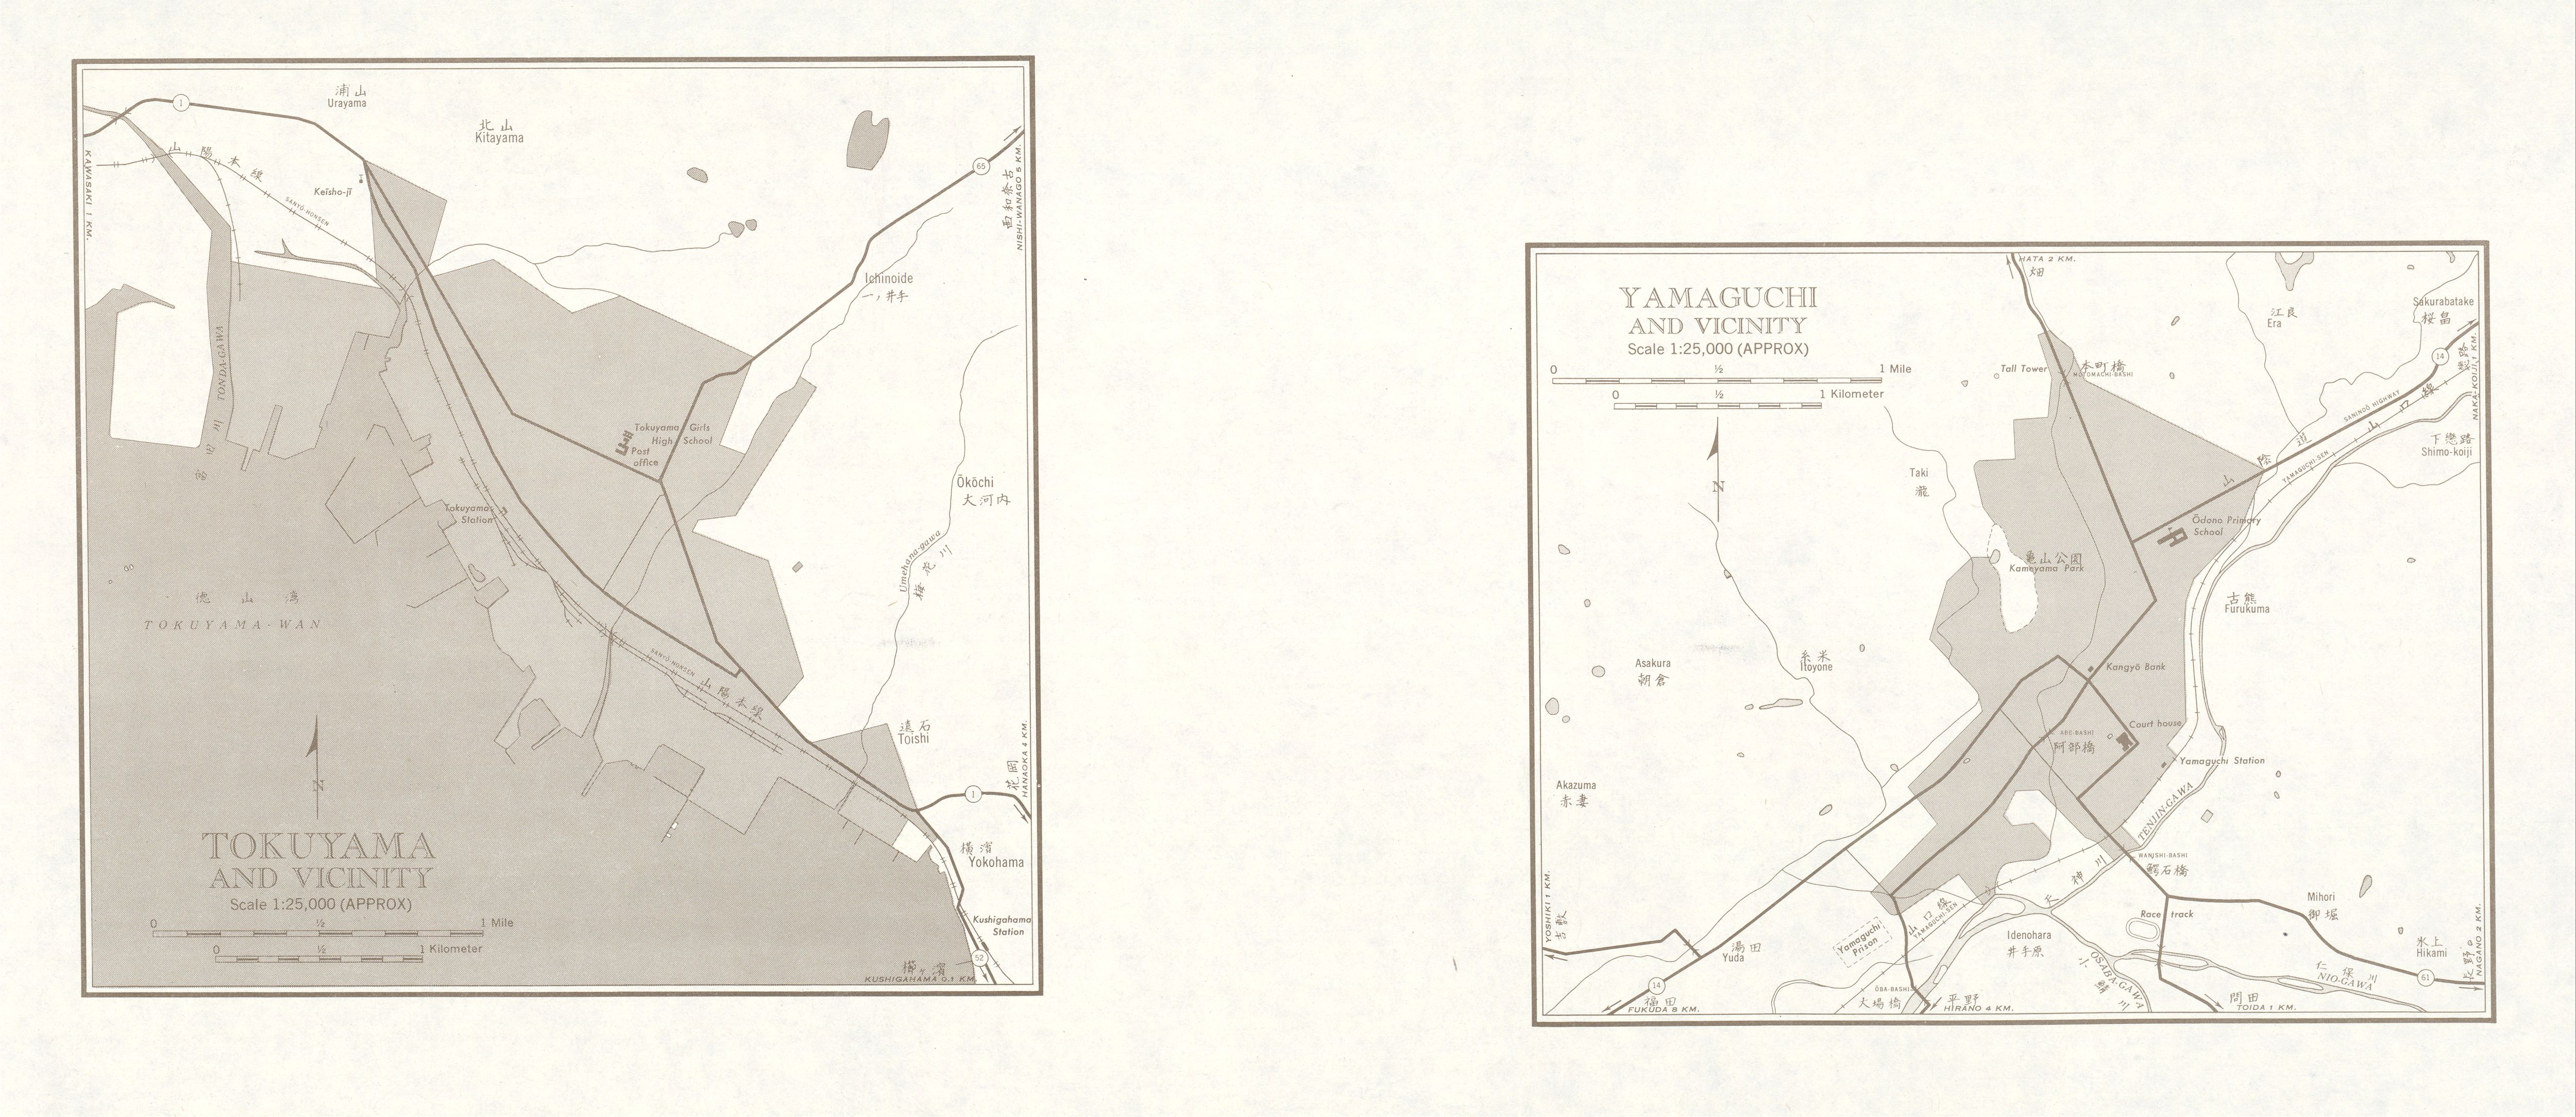 Maps of Tokuyama, Yamaguchi and their Vicinities, Japan 1954